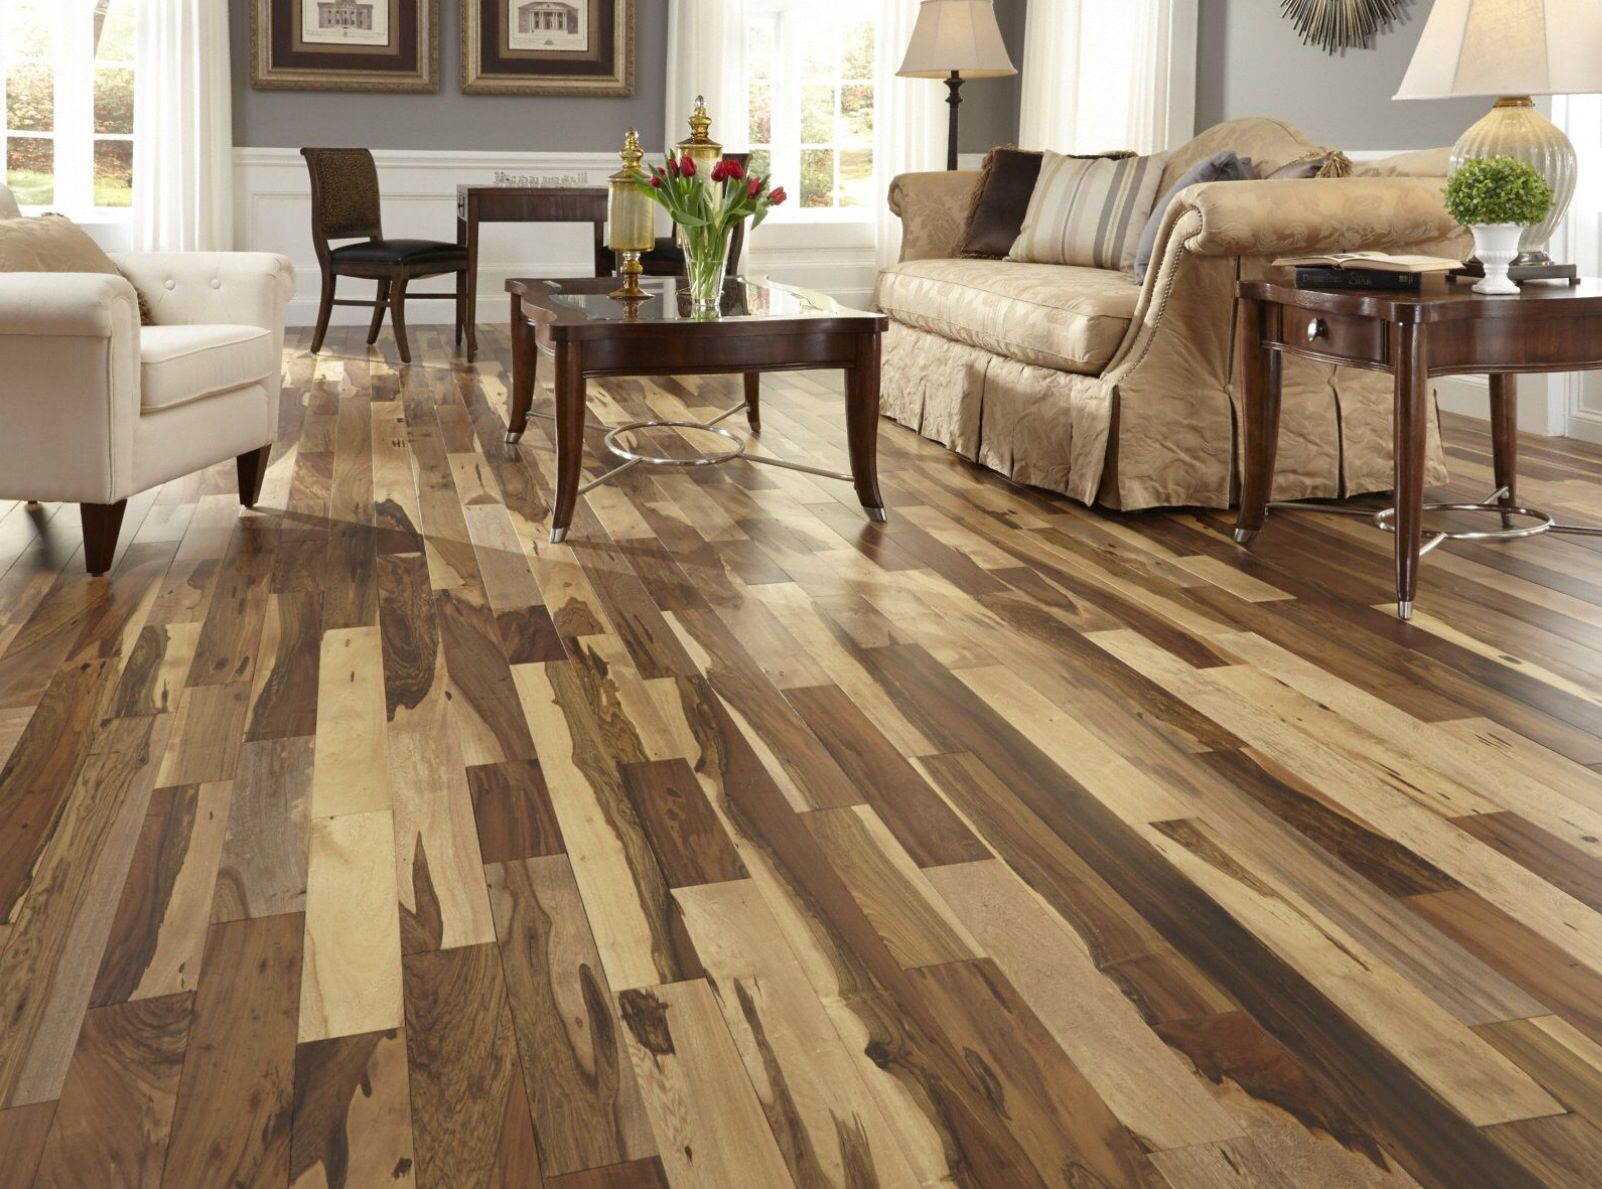 Brazilian Pecan Hardwood Flooring. Absolutely Beautiful.